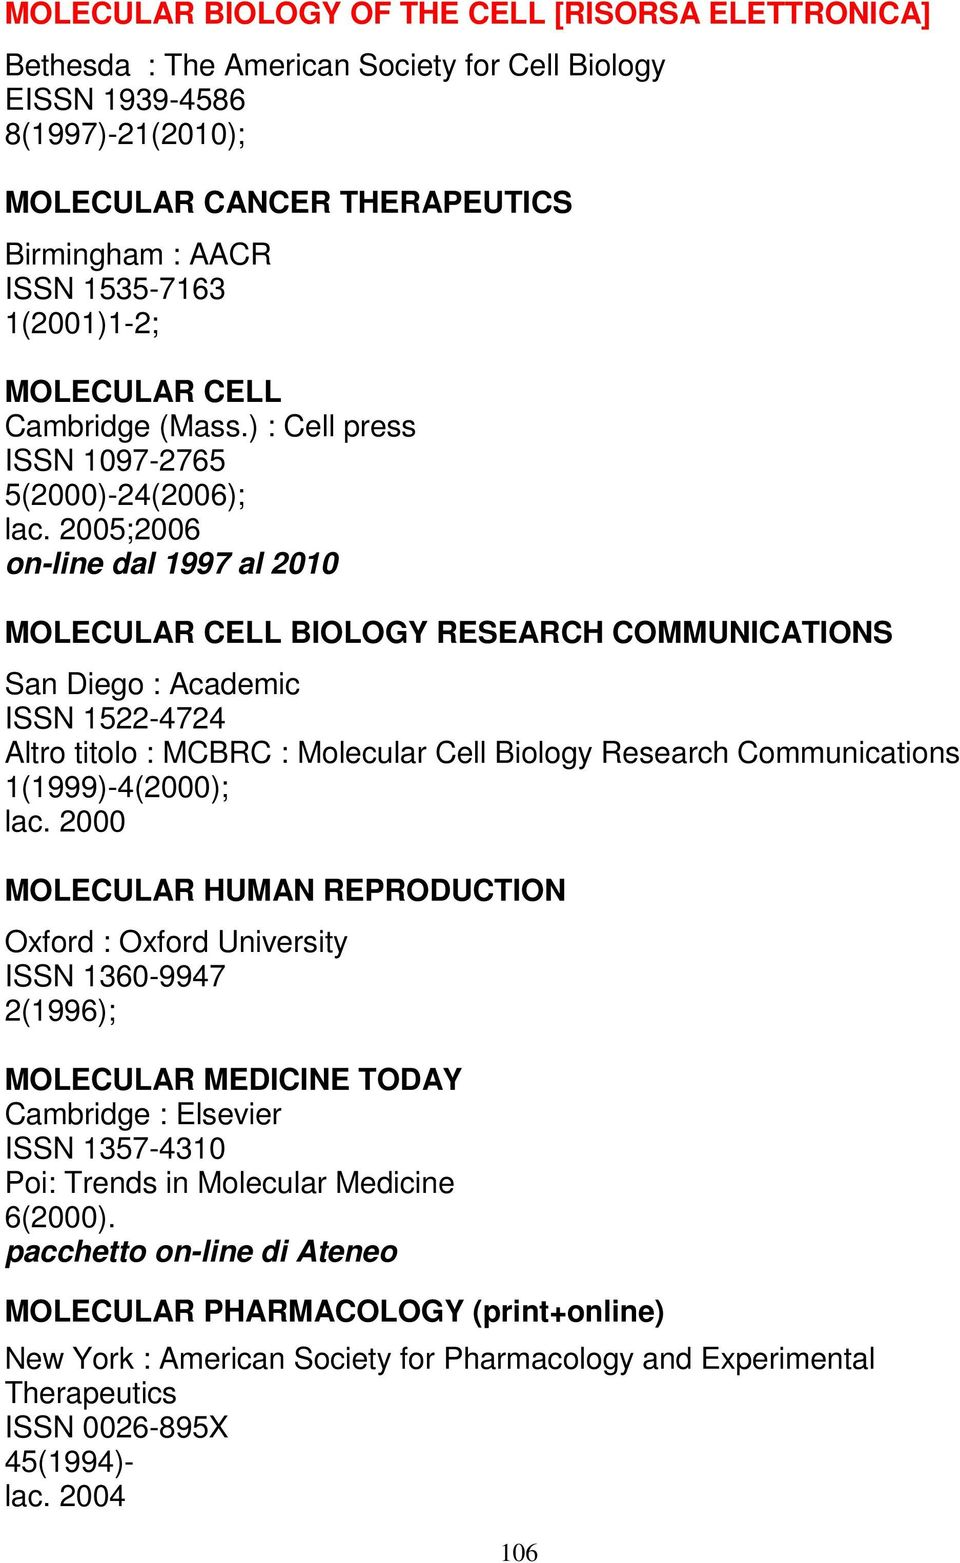 2005;2006 on-line dal 1997 al 2010 MOLECULAR CELL BIOLOGY RESEARCH COMMUNICATIONS San Diego : Academic ISSN 1522-4724 Altro titolo : MCBRC : Molecular Cell Biology Research Communications